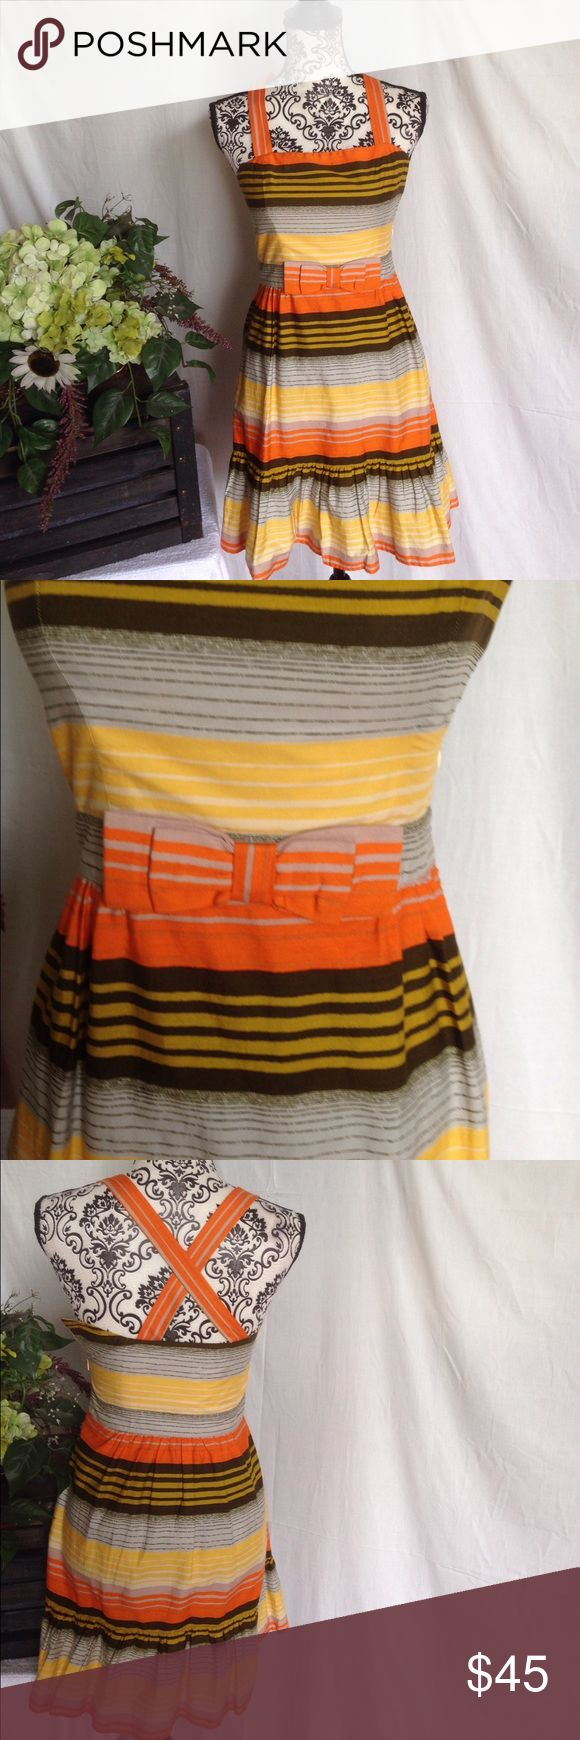 French Connection Cheerful Striped Dress Size 2 (doesn't fit my mannequin lol) cheerful sunset colors. Striped. Bow at waist. Criss cross back. French connection. No flaws. Free gift. French Connection Dresses Midi